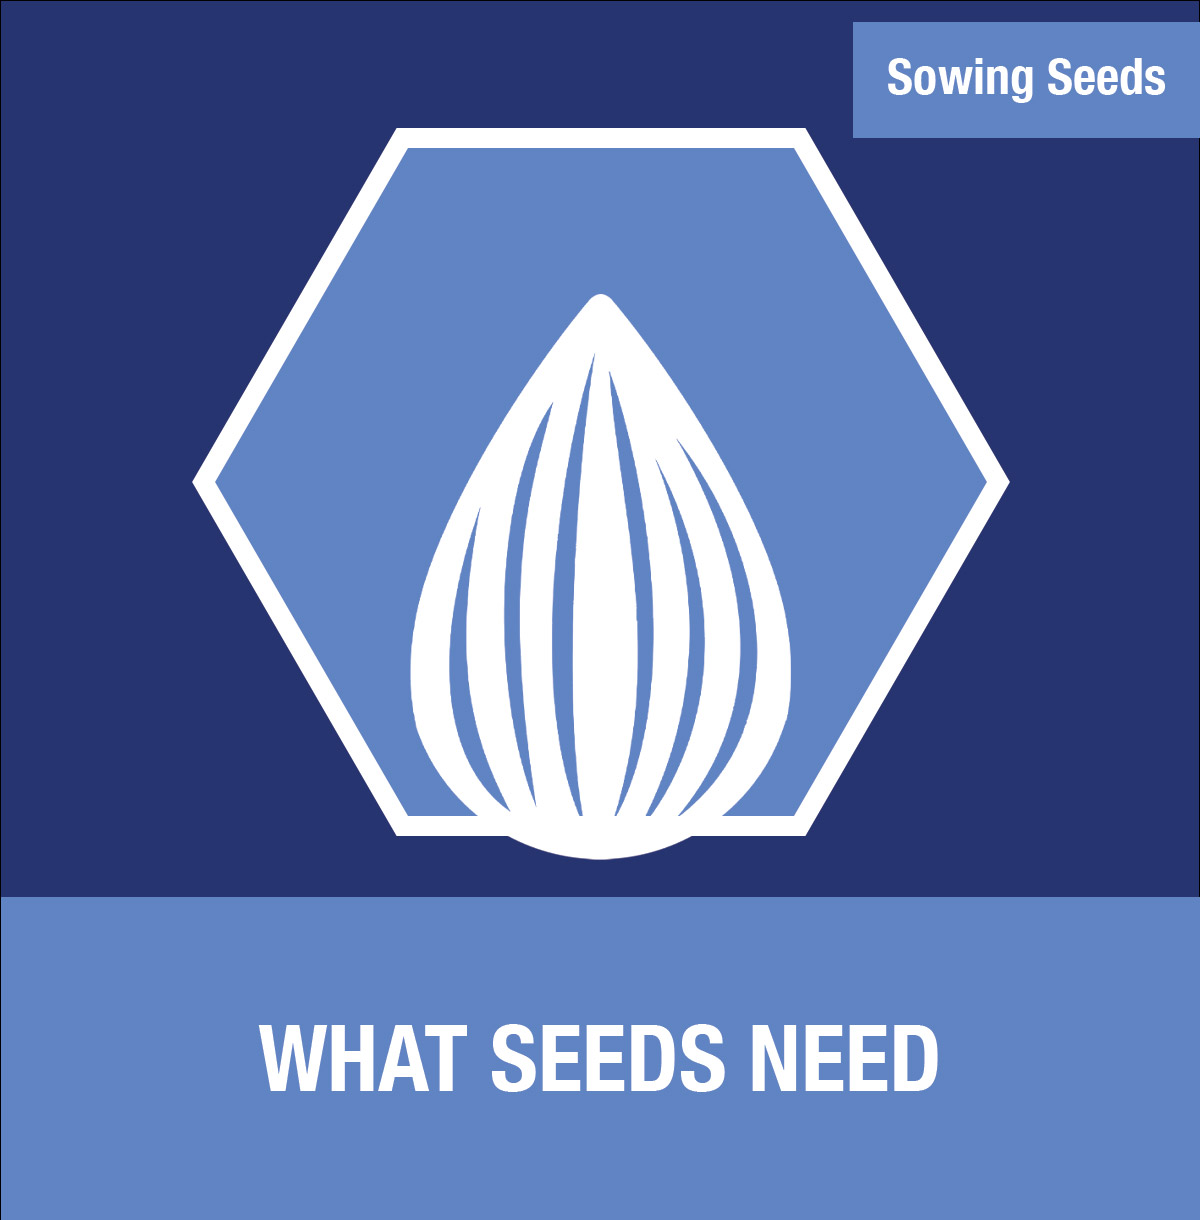 Sowing Seeds: What Seeds Need